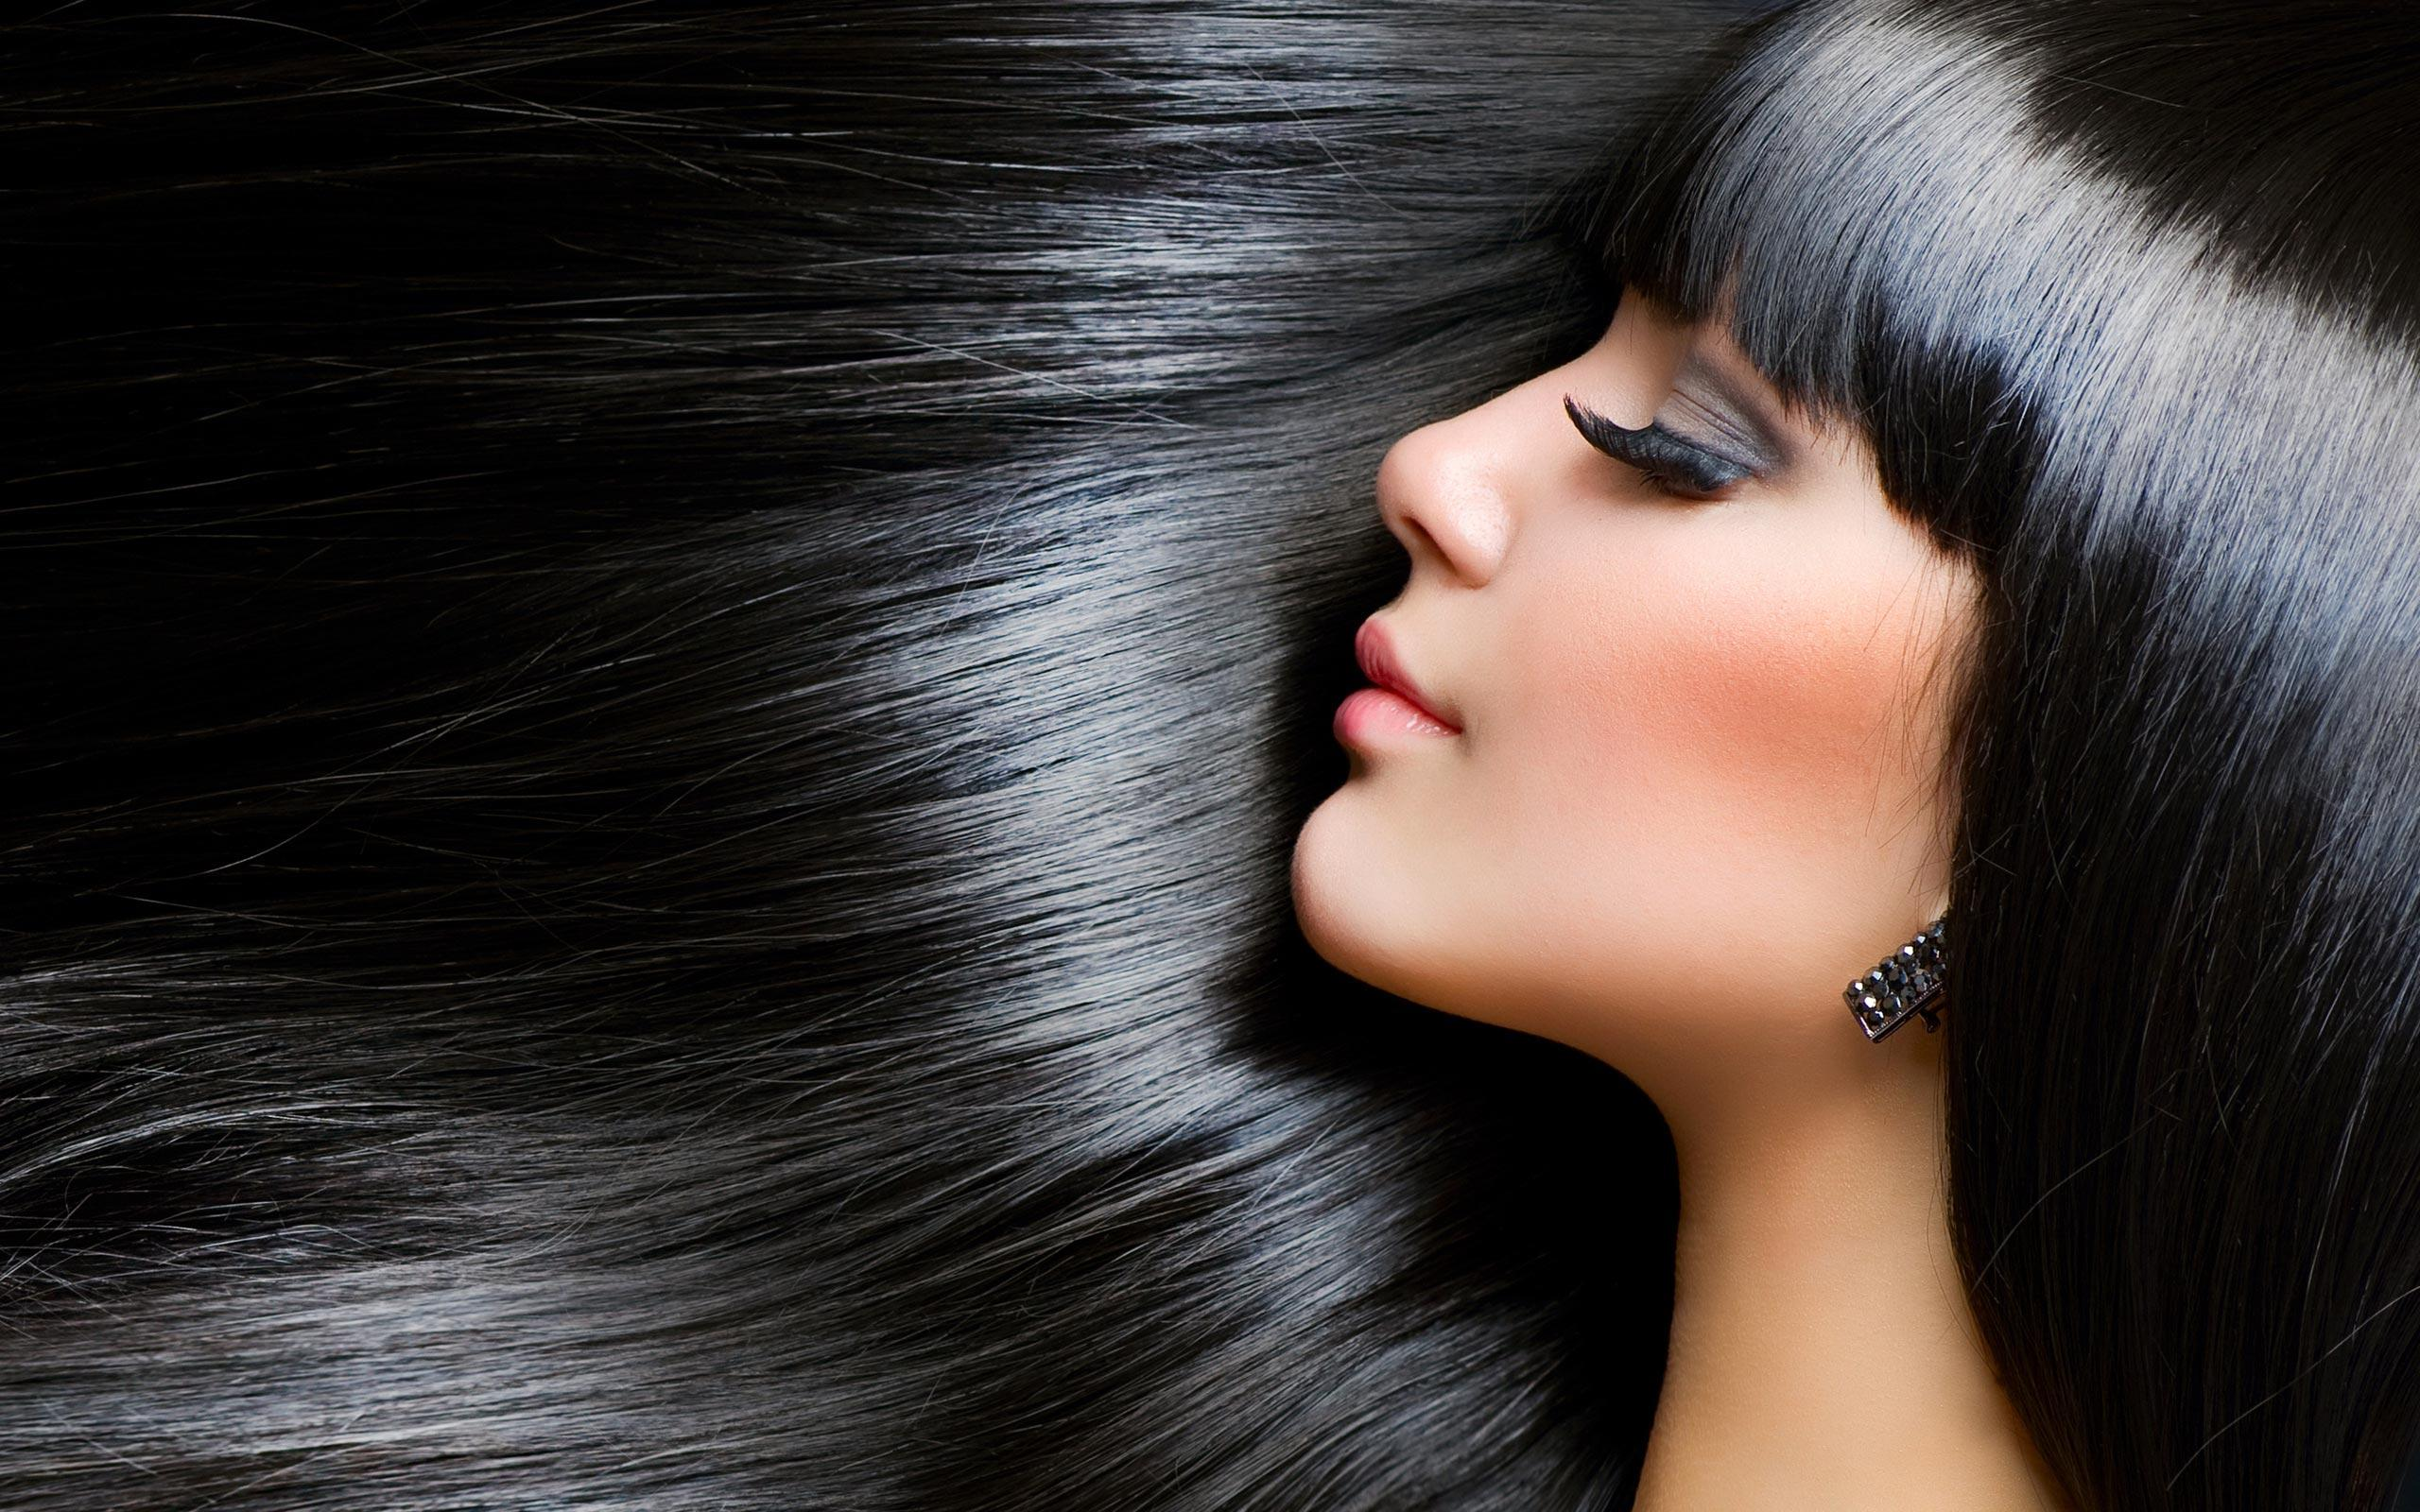 Hairstyle Wallpapers Top Free Hairstyle Backgrounds Wallpaperaccess